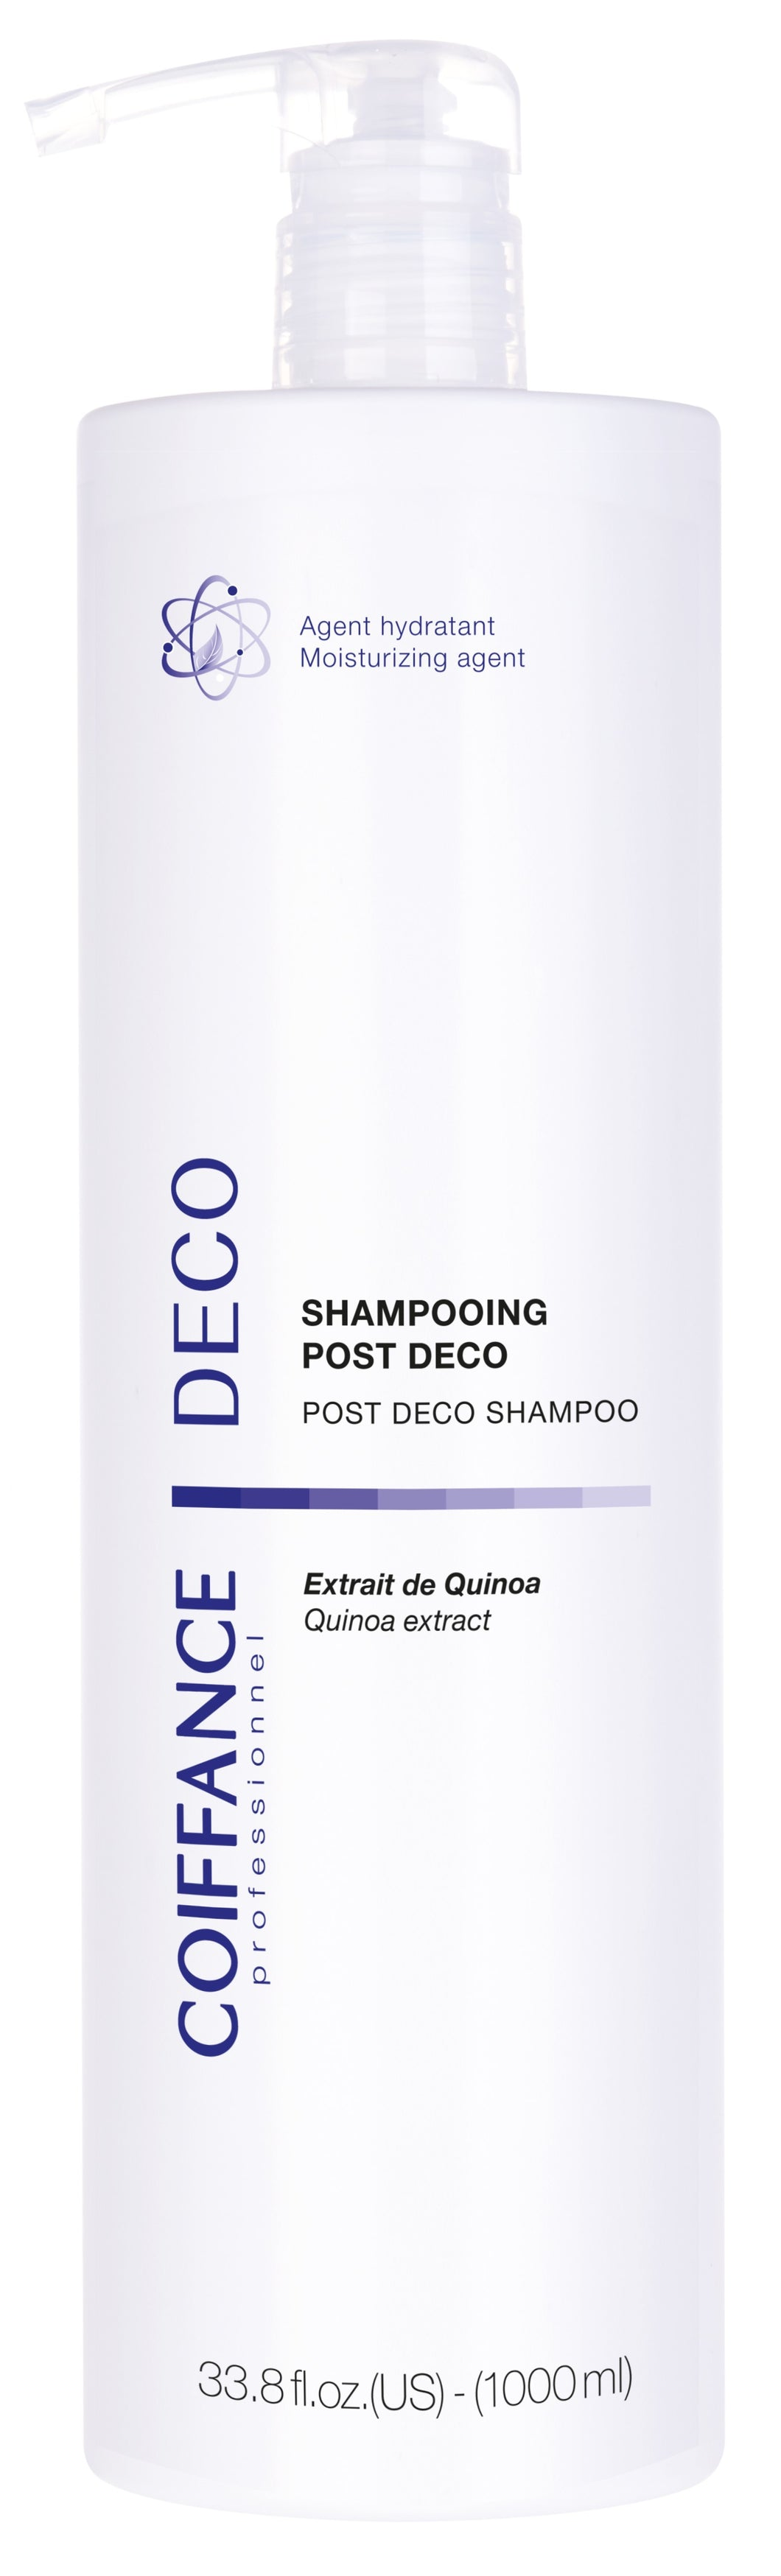 Coiffance -  deco post deco shampoo - 1000ML